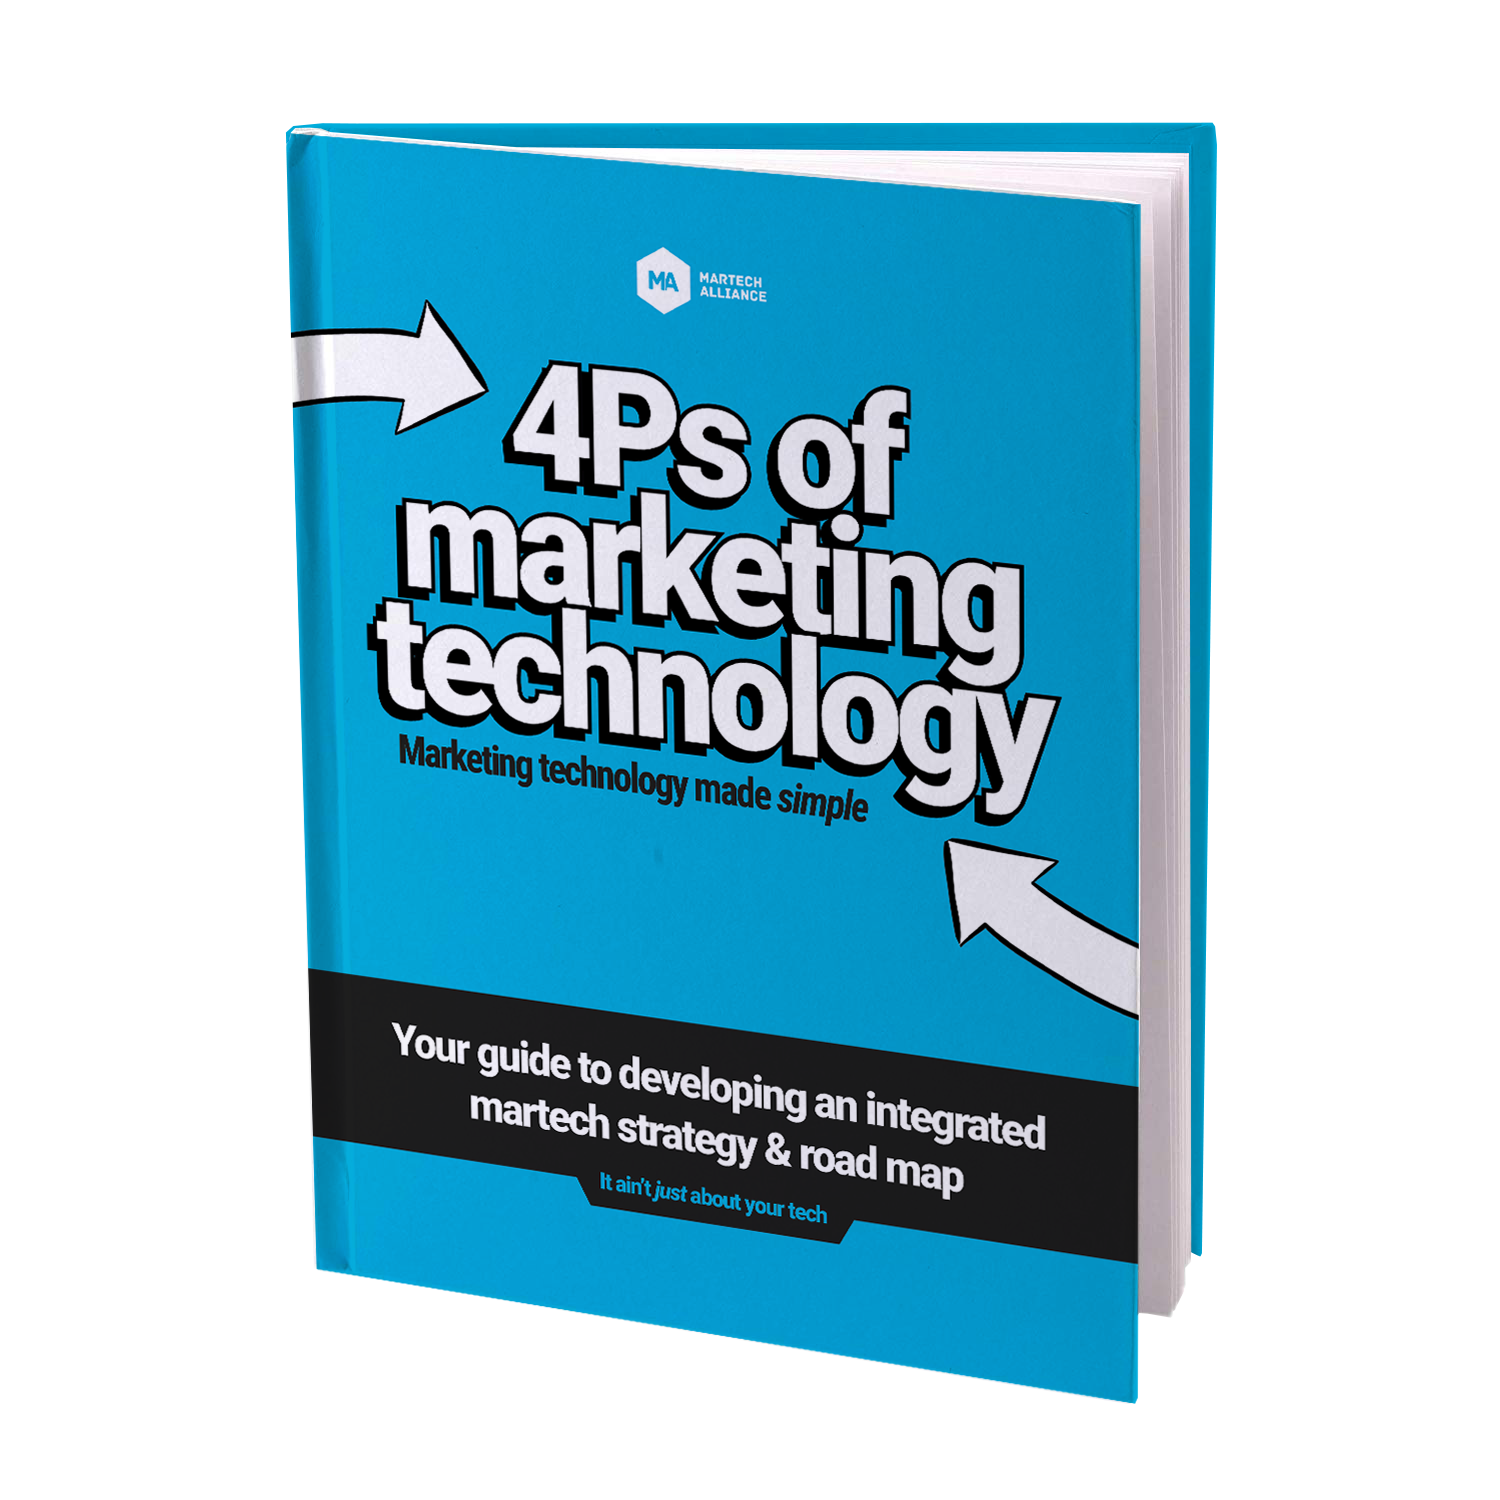 4Ps of Marketing technology ebook